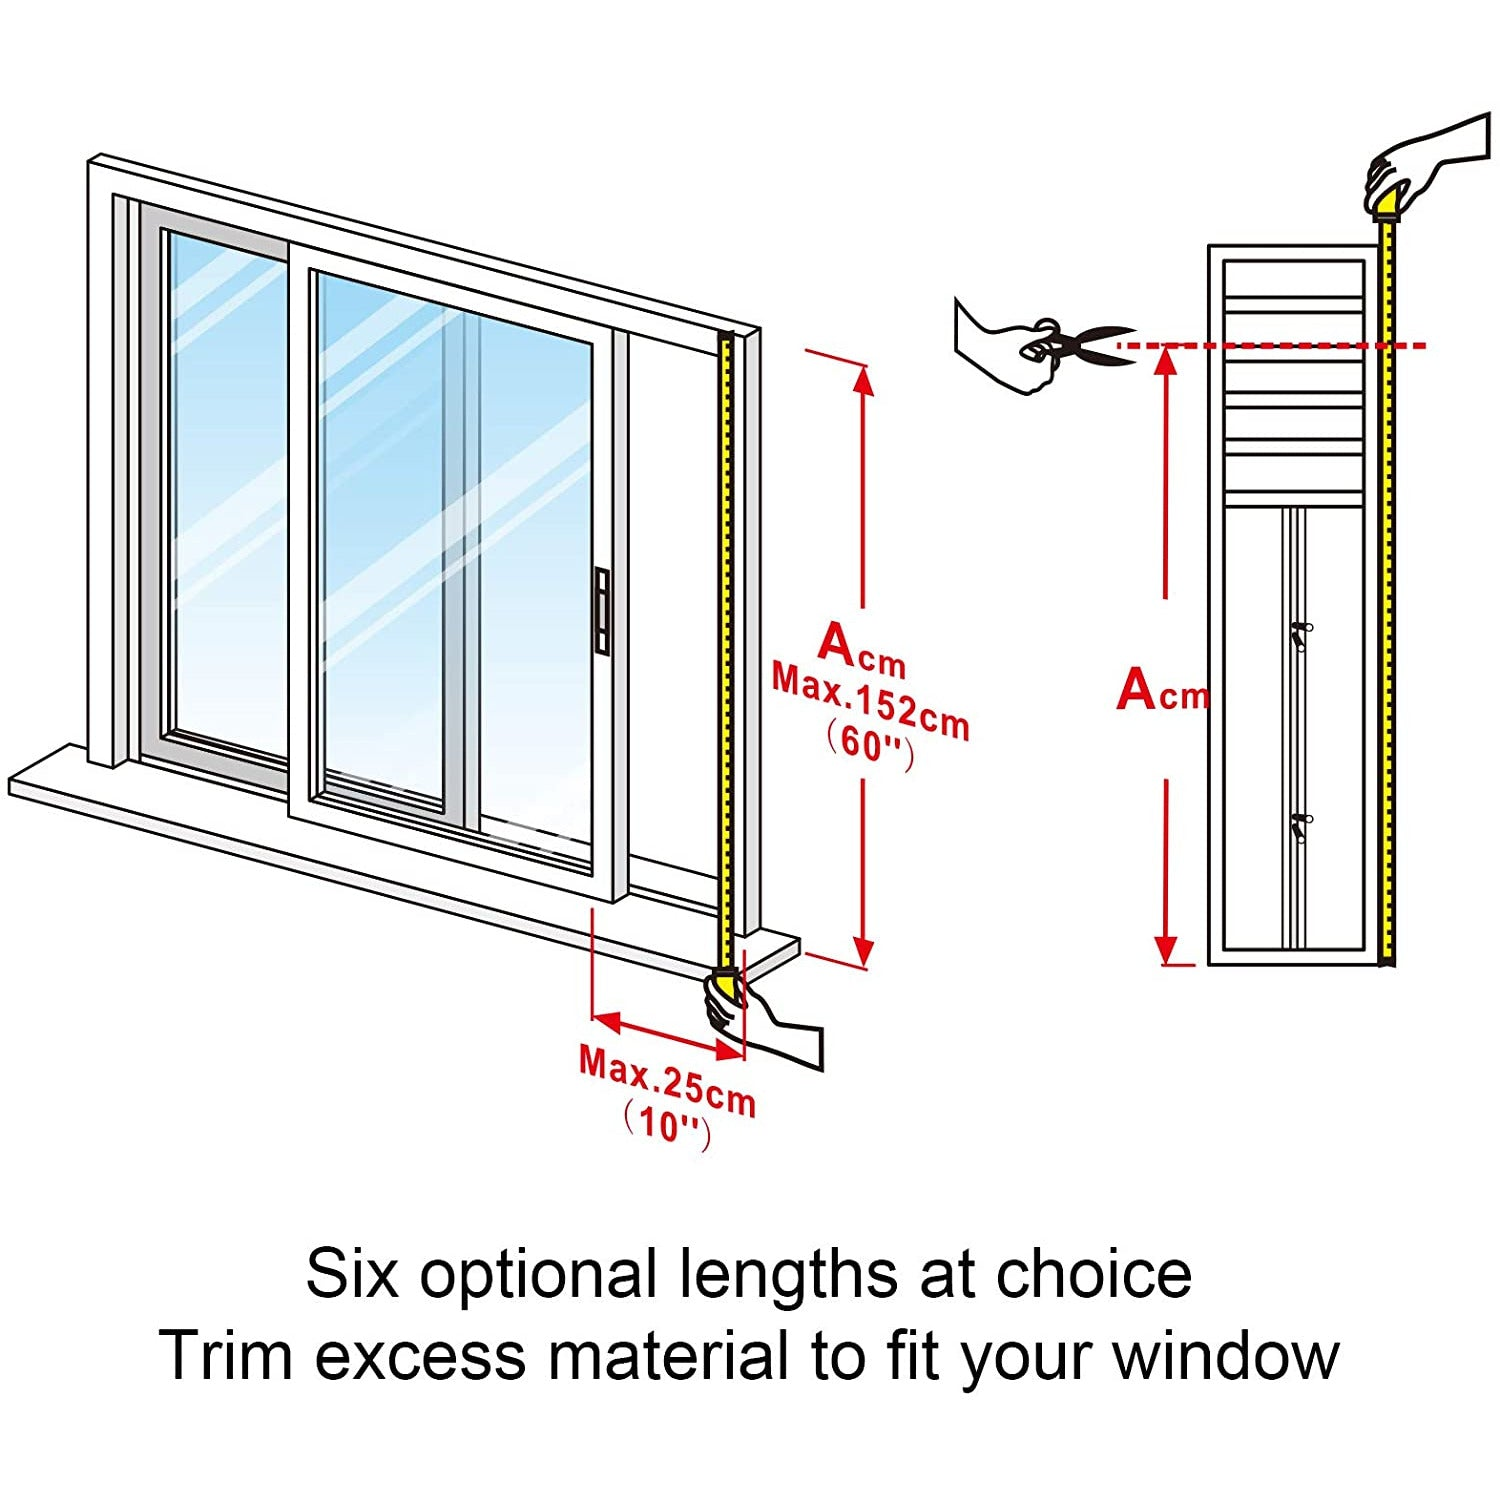 HOOMEE Adjustable Sliding Window Seal for Portable Air Conditioner and Tumble Dryer –Min Size 25x102 – Max Size 25x152 cm - Works with Sliding and Hung Windows, Easy to Install, Waterproof